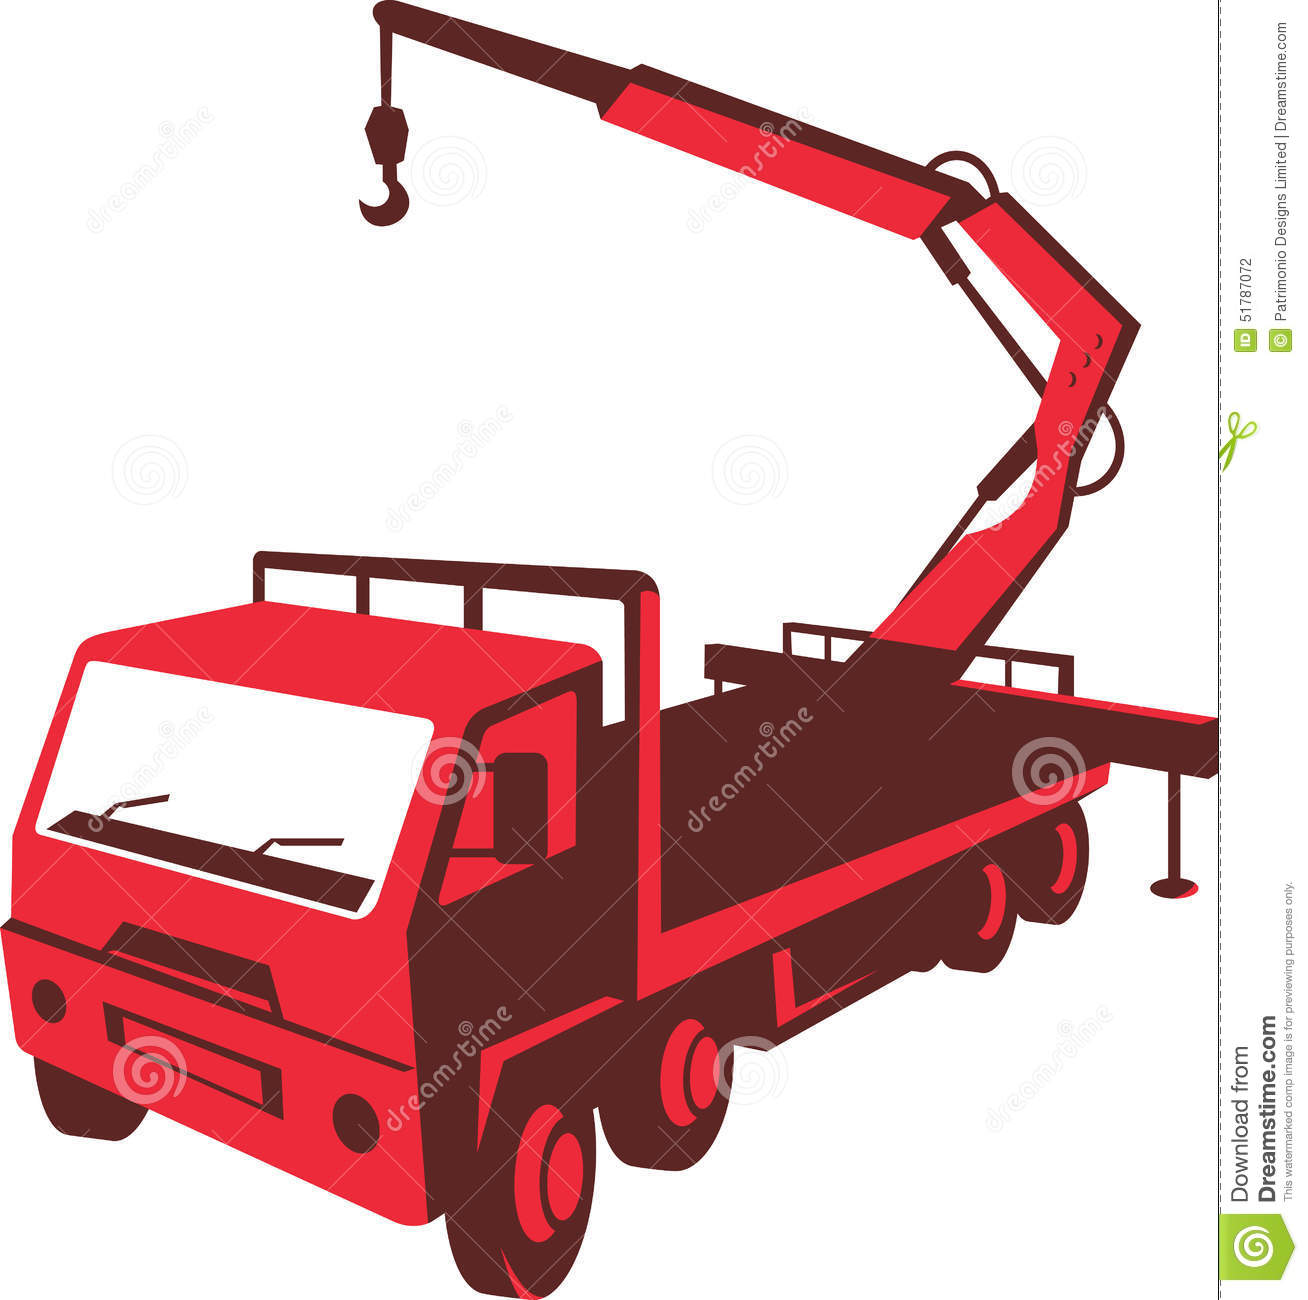 Truck Mounted Crane Cartage Hoist Retro Stock Vector.